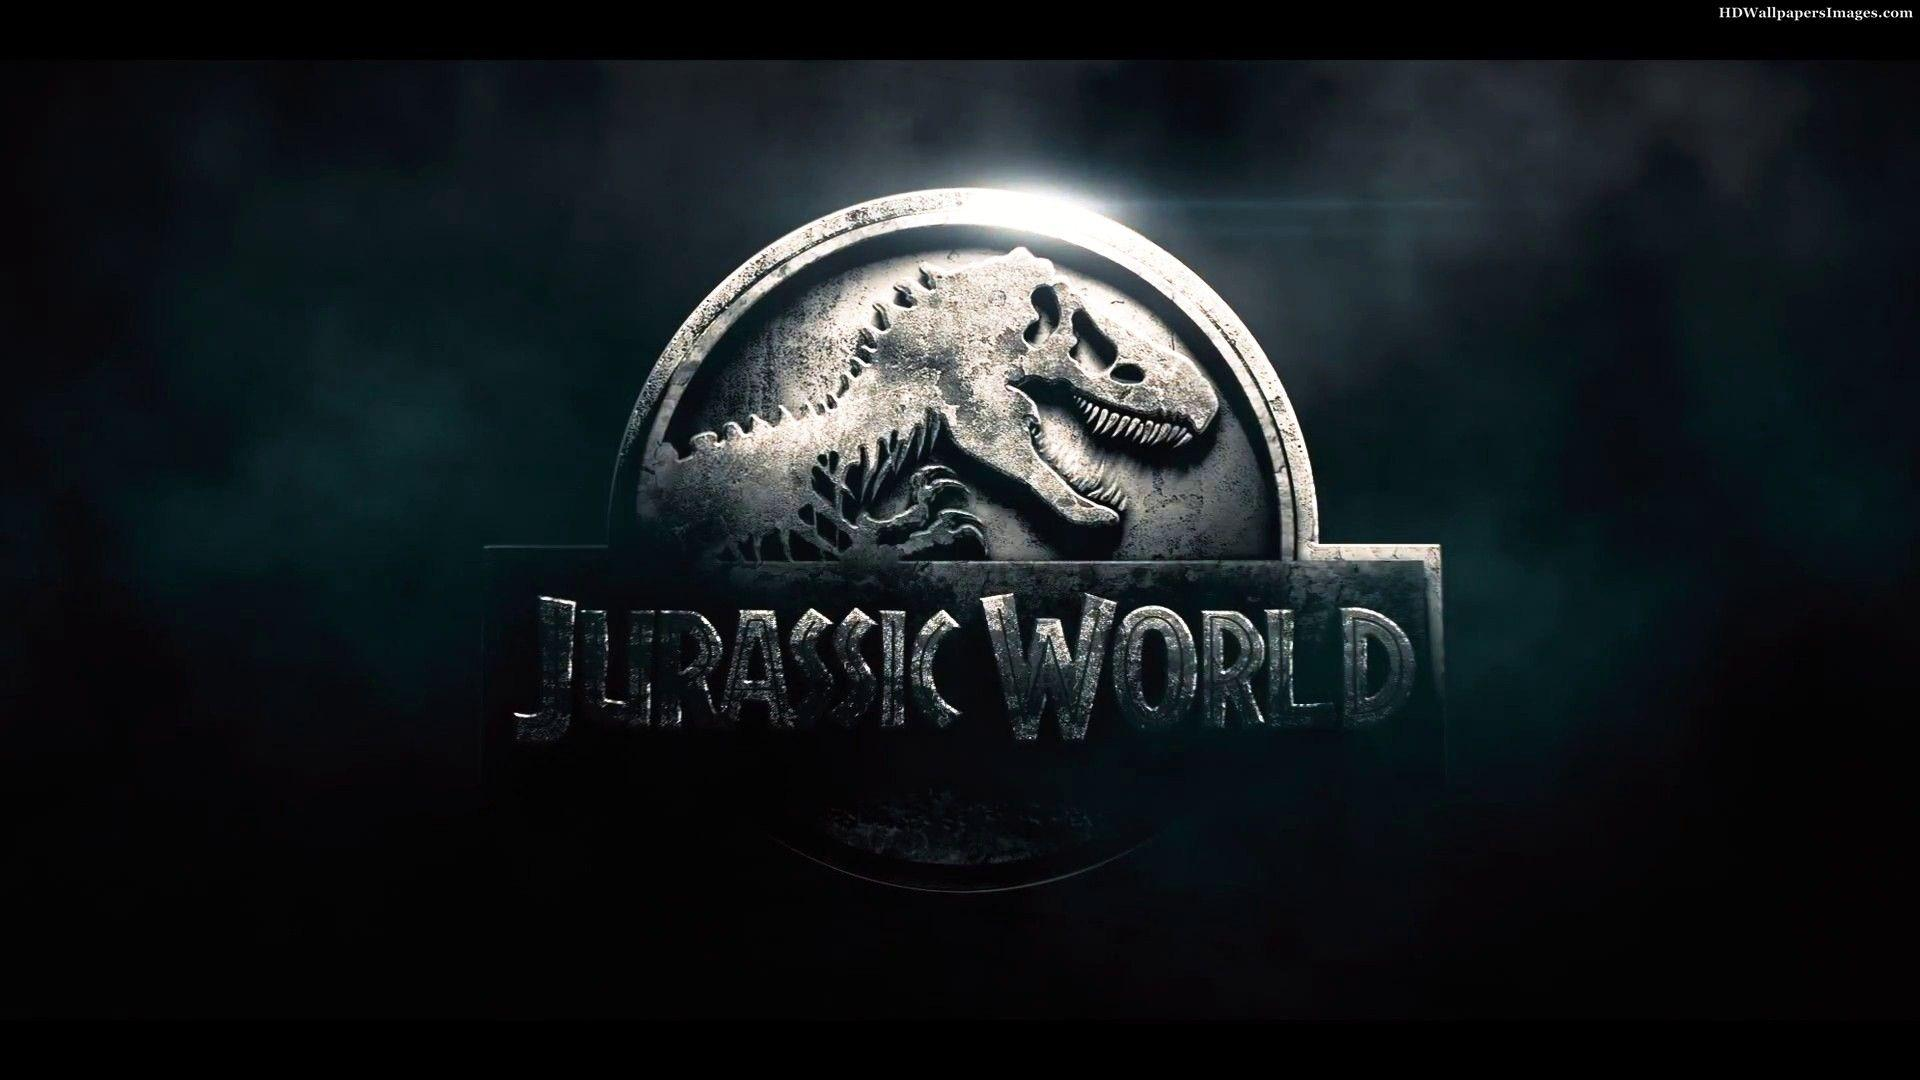 Images Of Jurassic World Hd Wallpaper